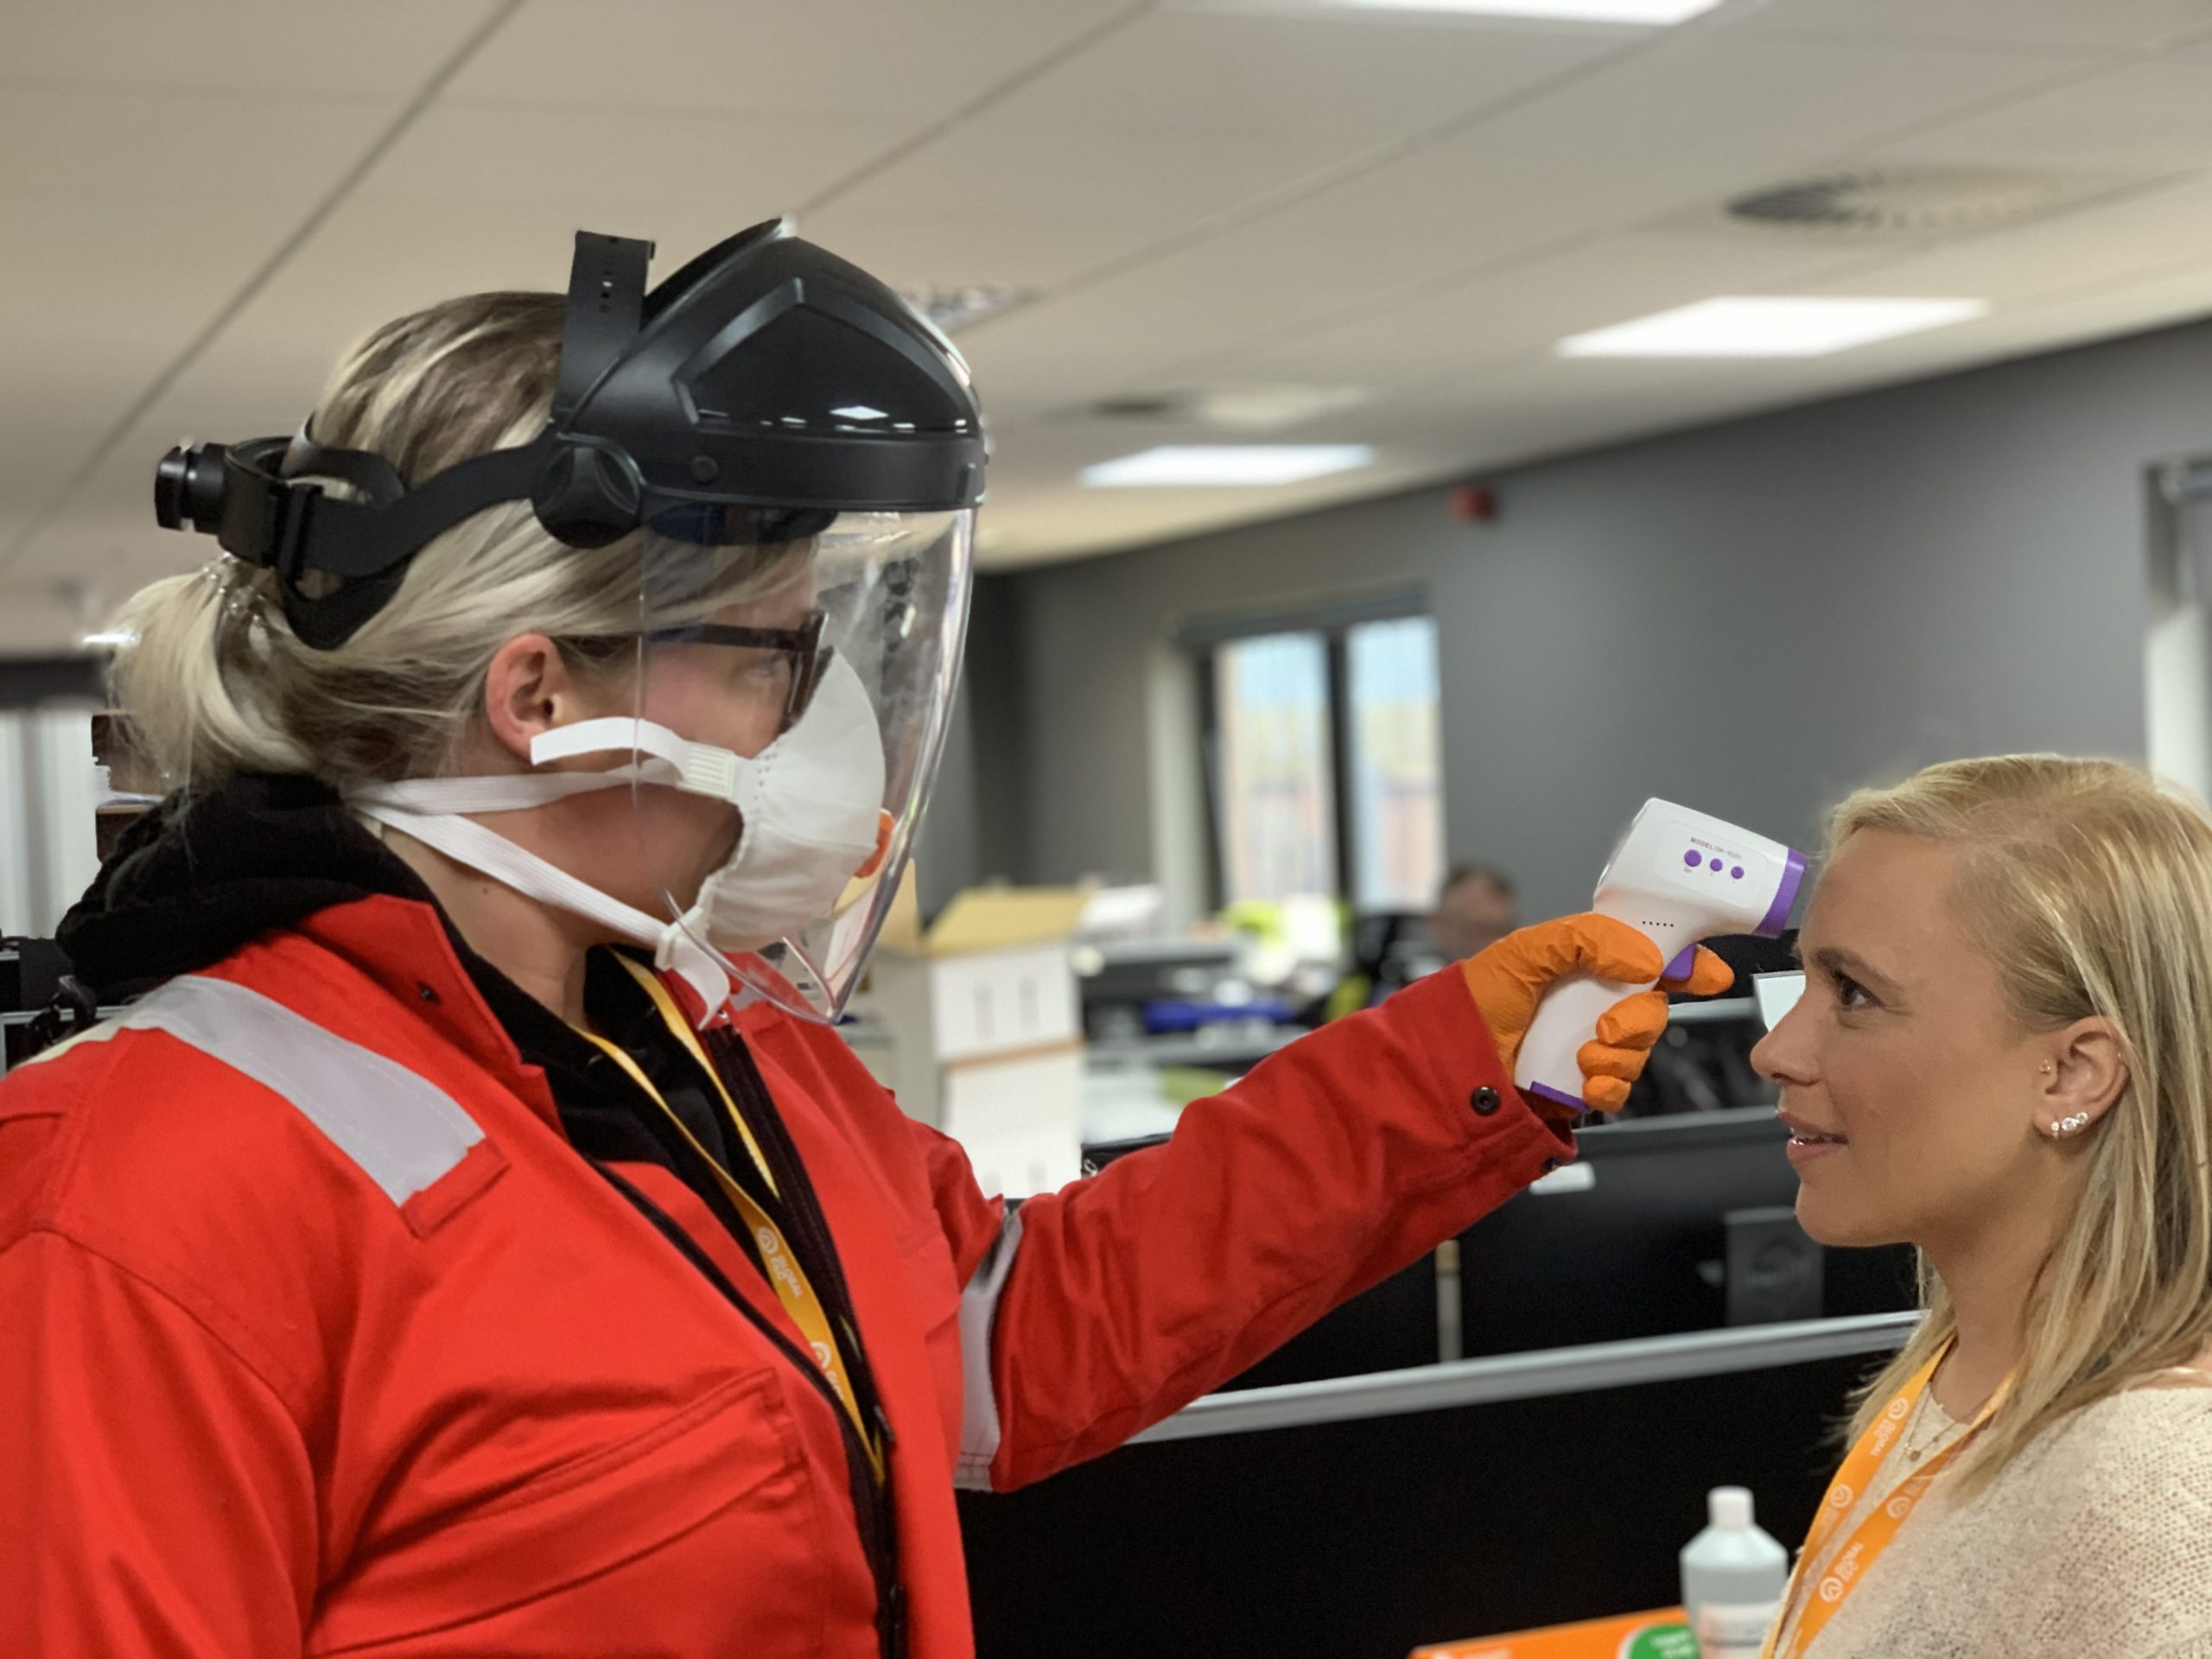 GE Group staff undergoing temperature testing for COVID-19